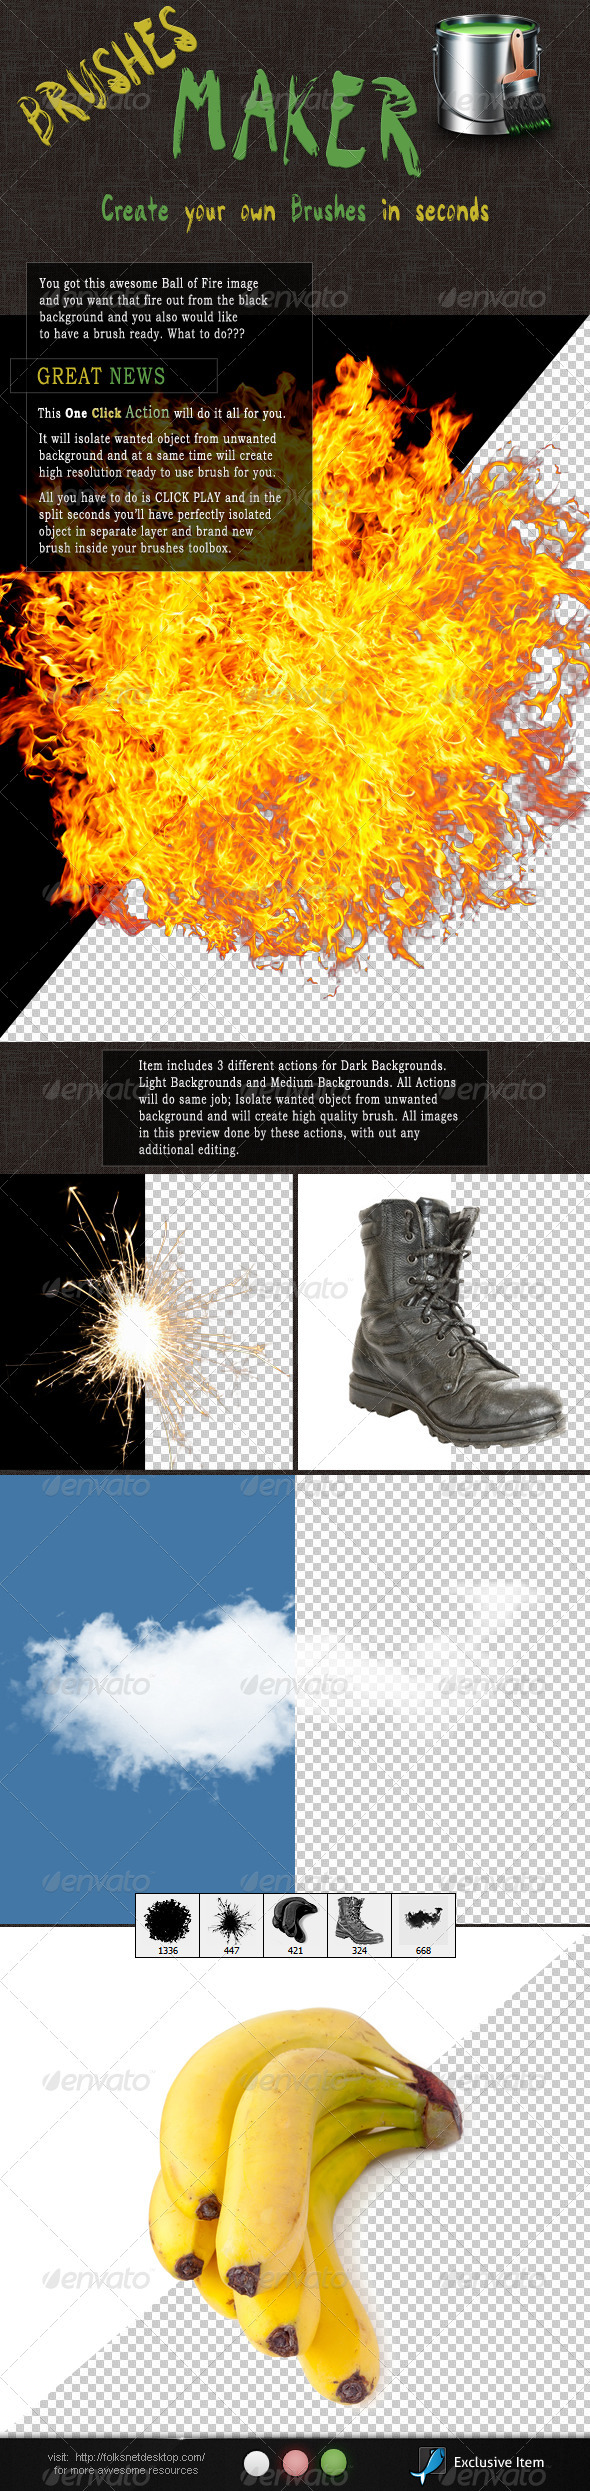 GraphicRiver Brushes Maker 2482471